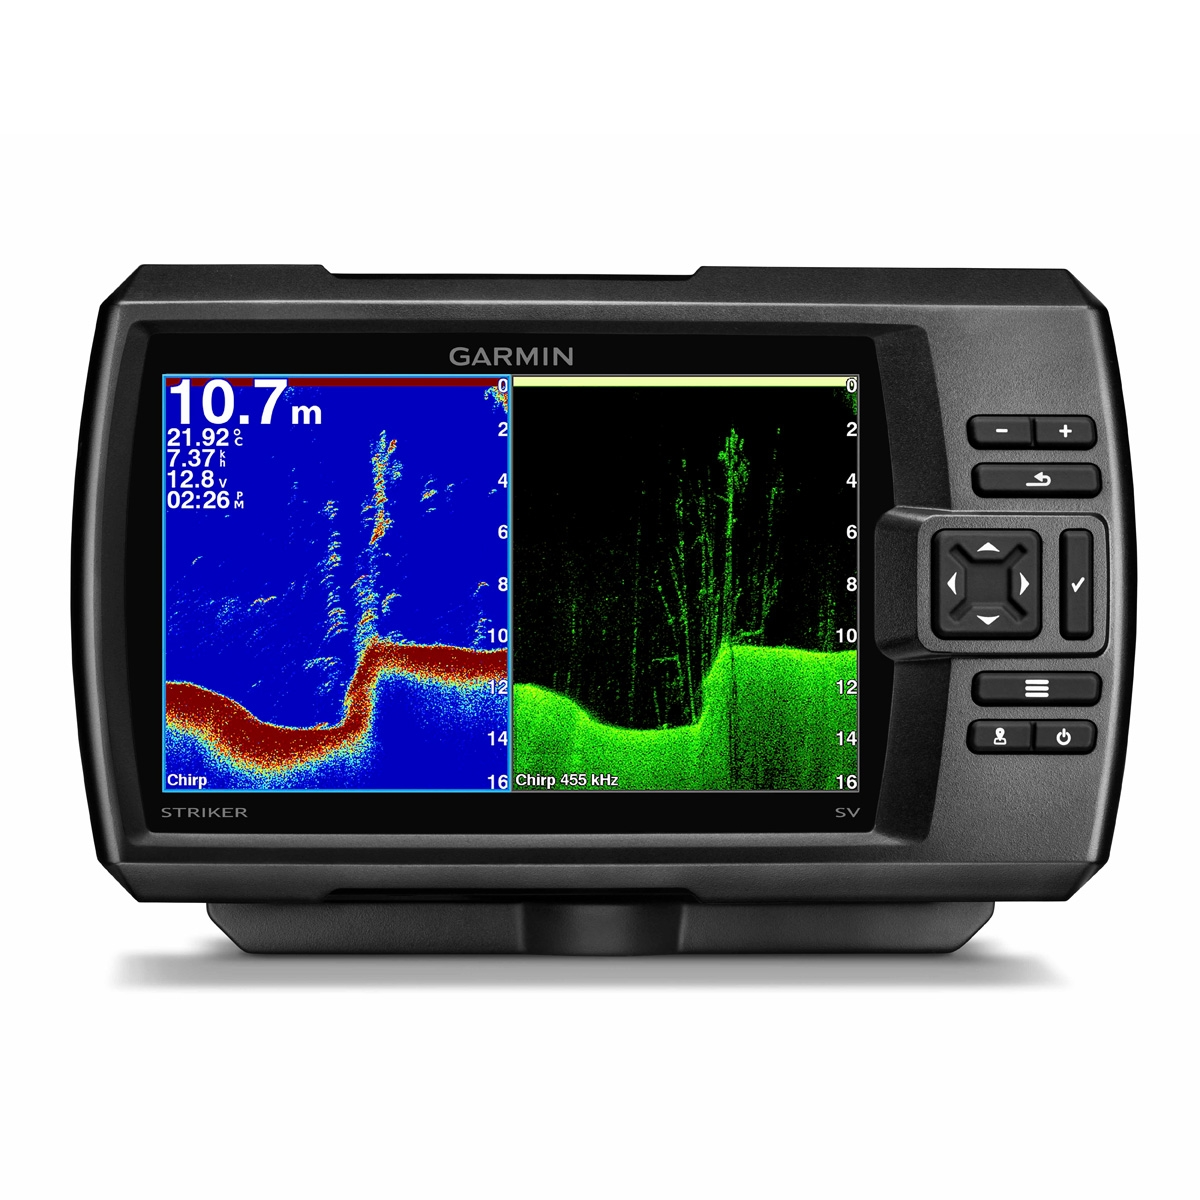 Garmin striker 7dv fishfinder for Utah fish finder